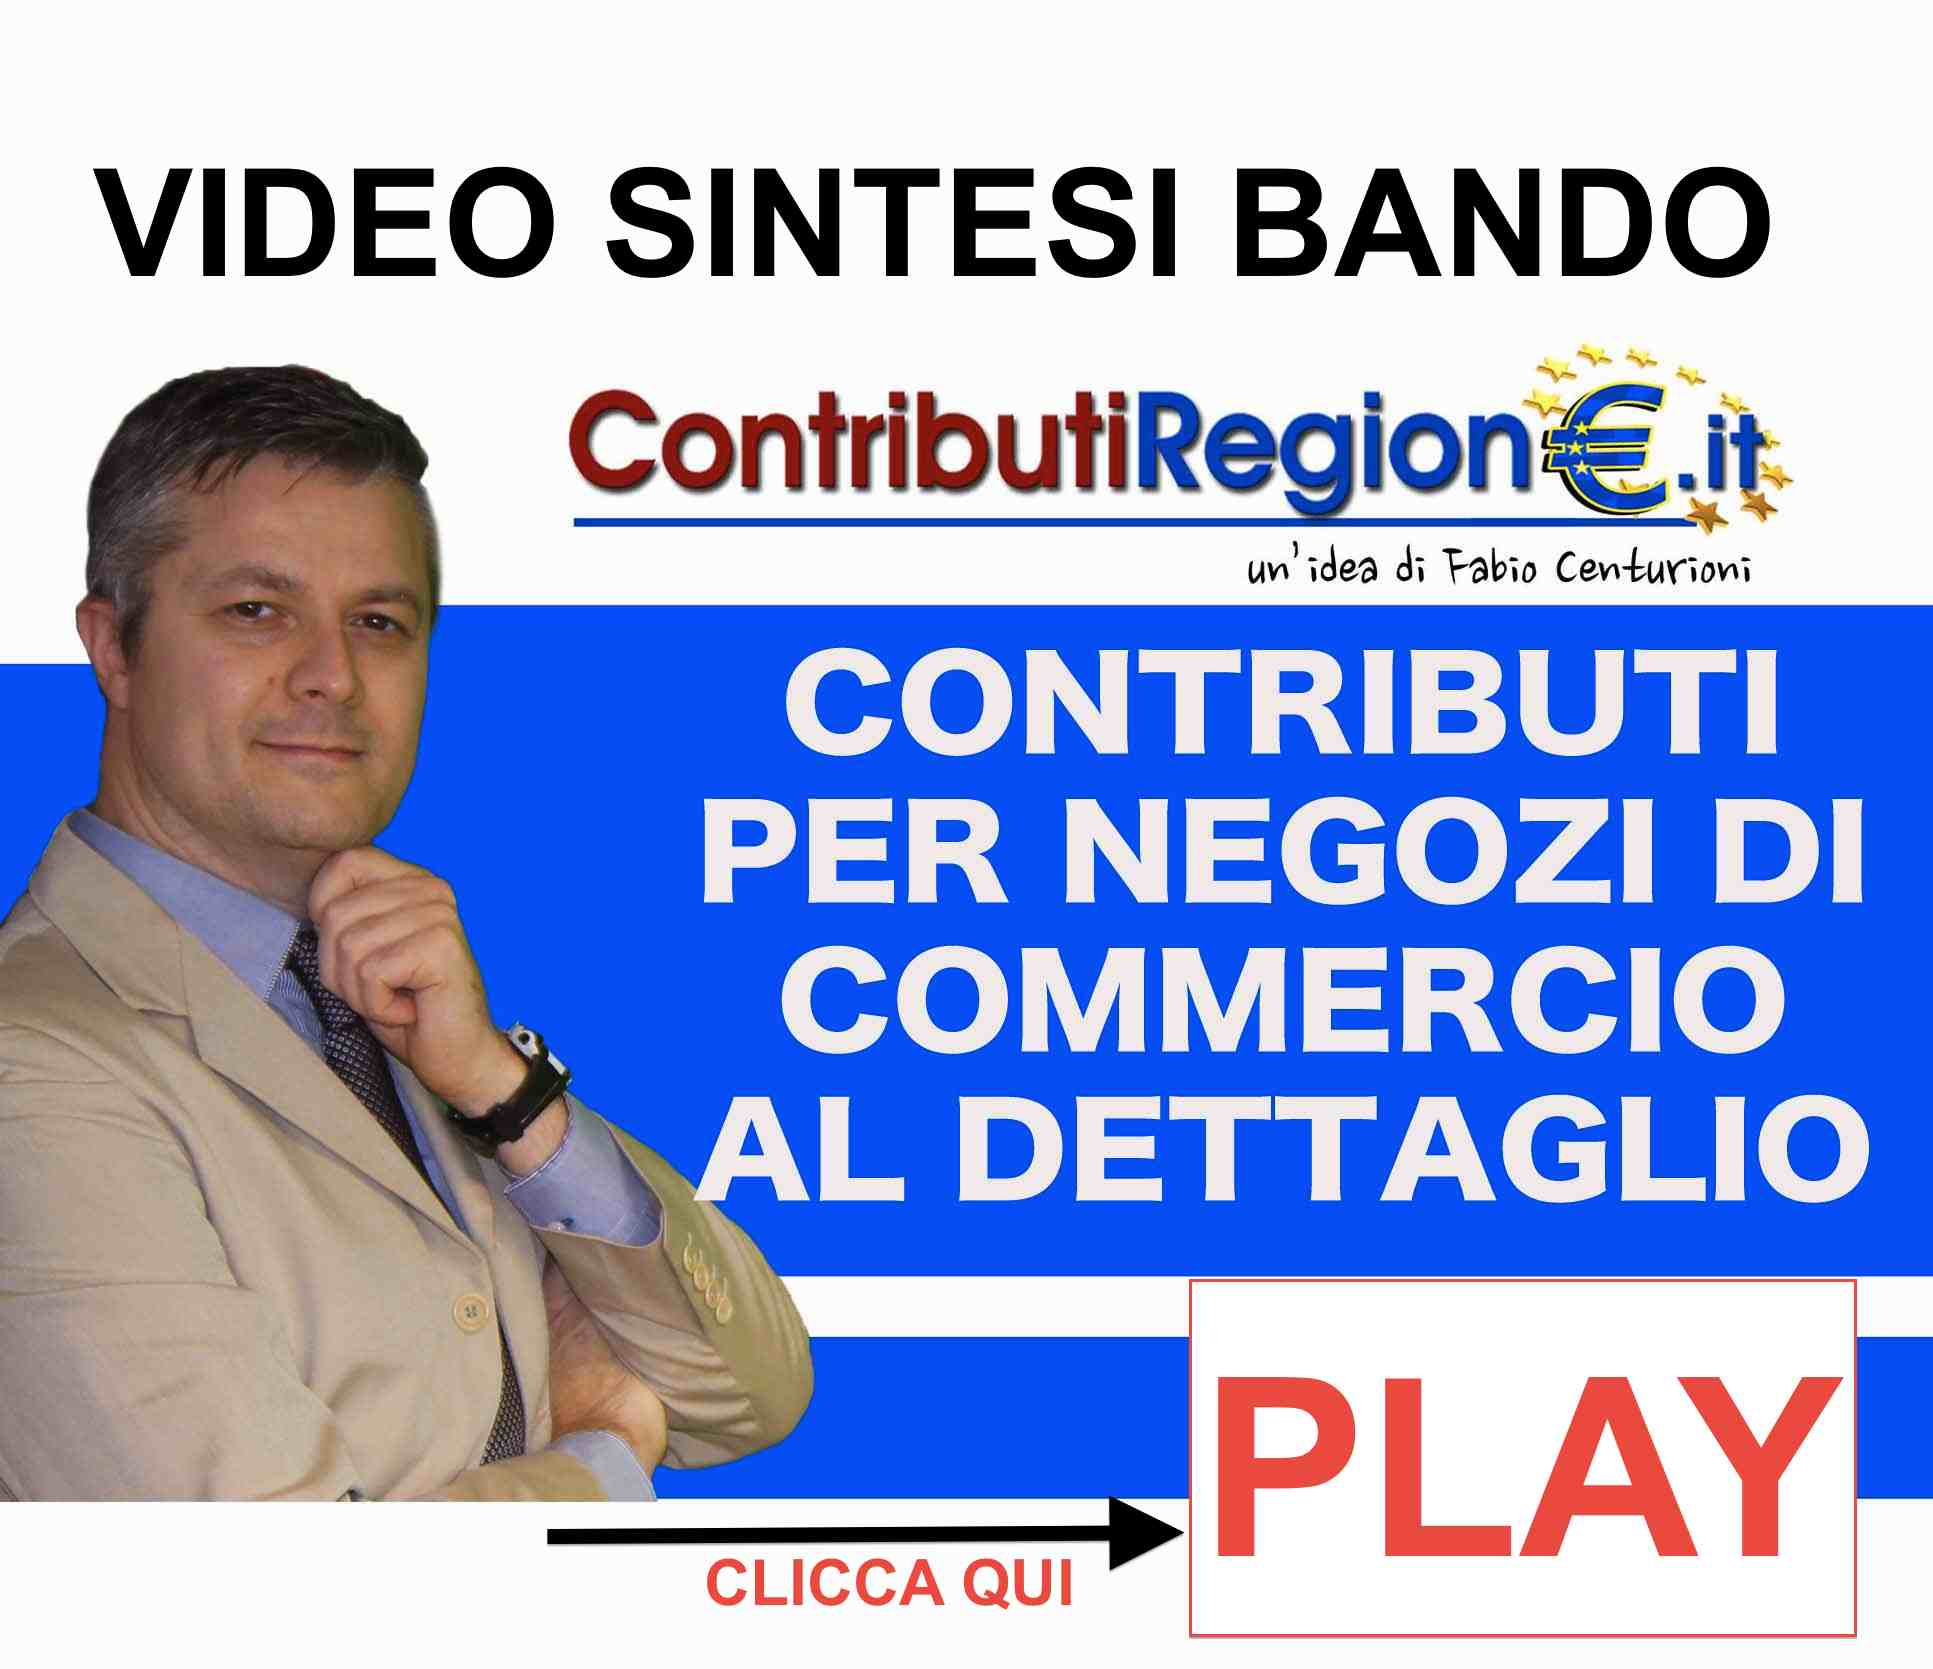 Video sintesi bando commercio Regione Marche